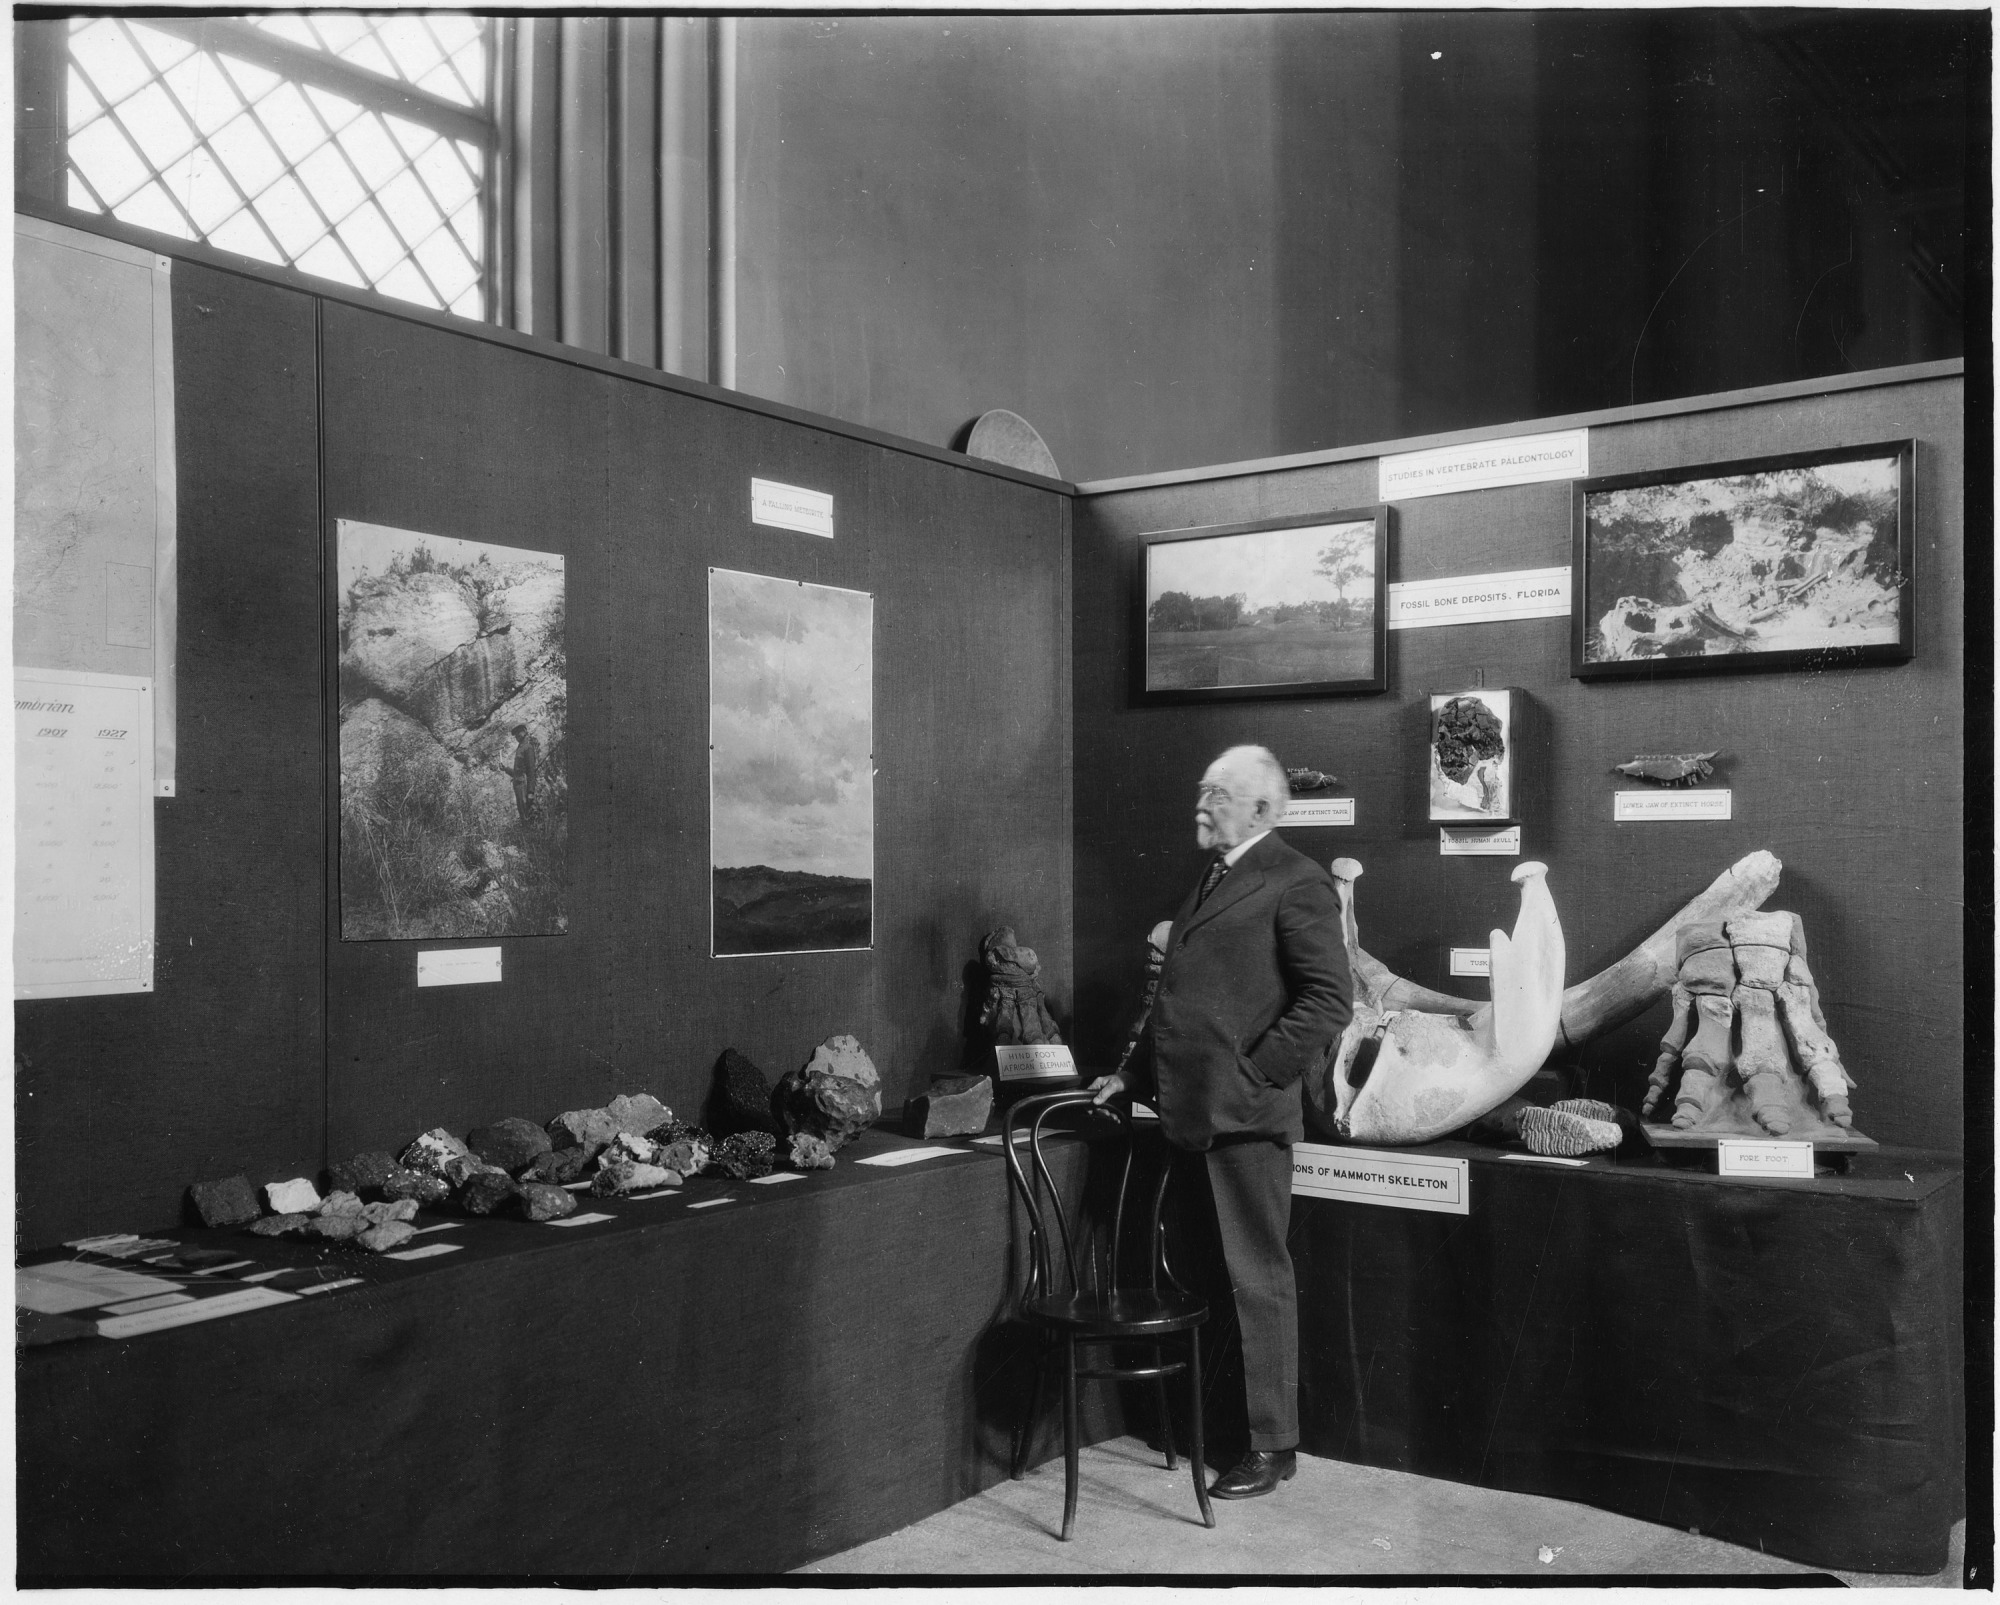 George P. Merrill Looking at Physical and Chemical Geology Exhibit